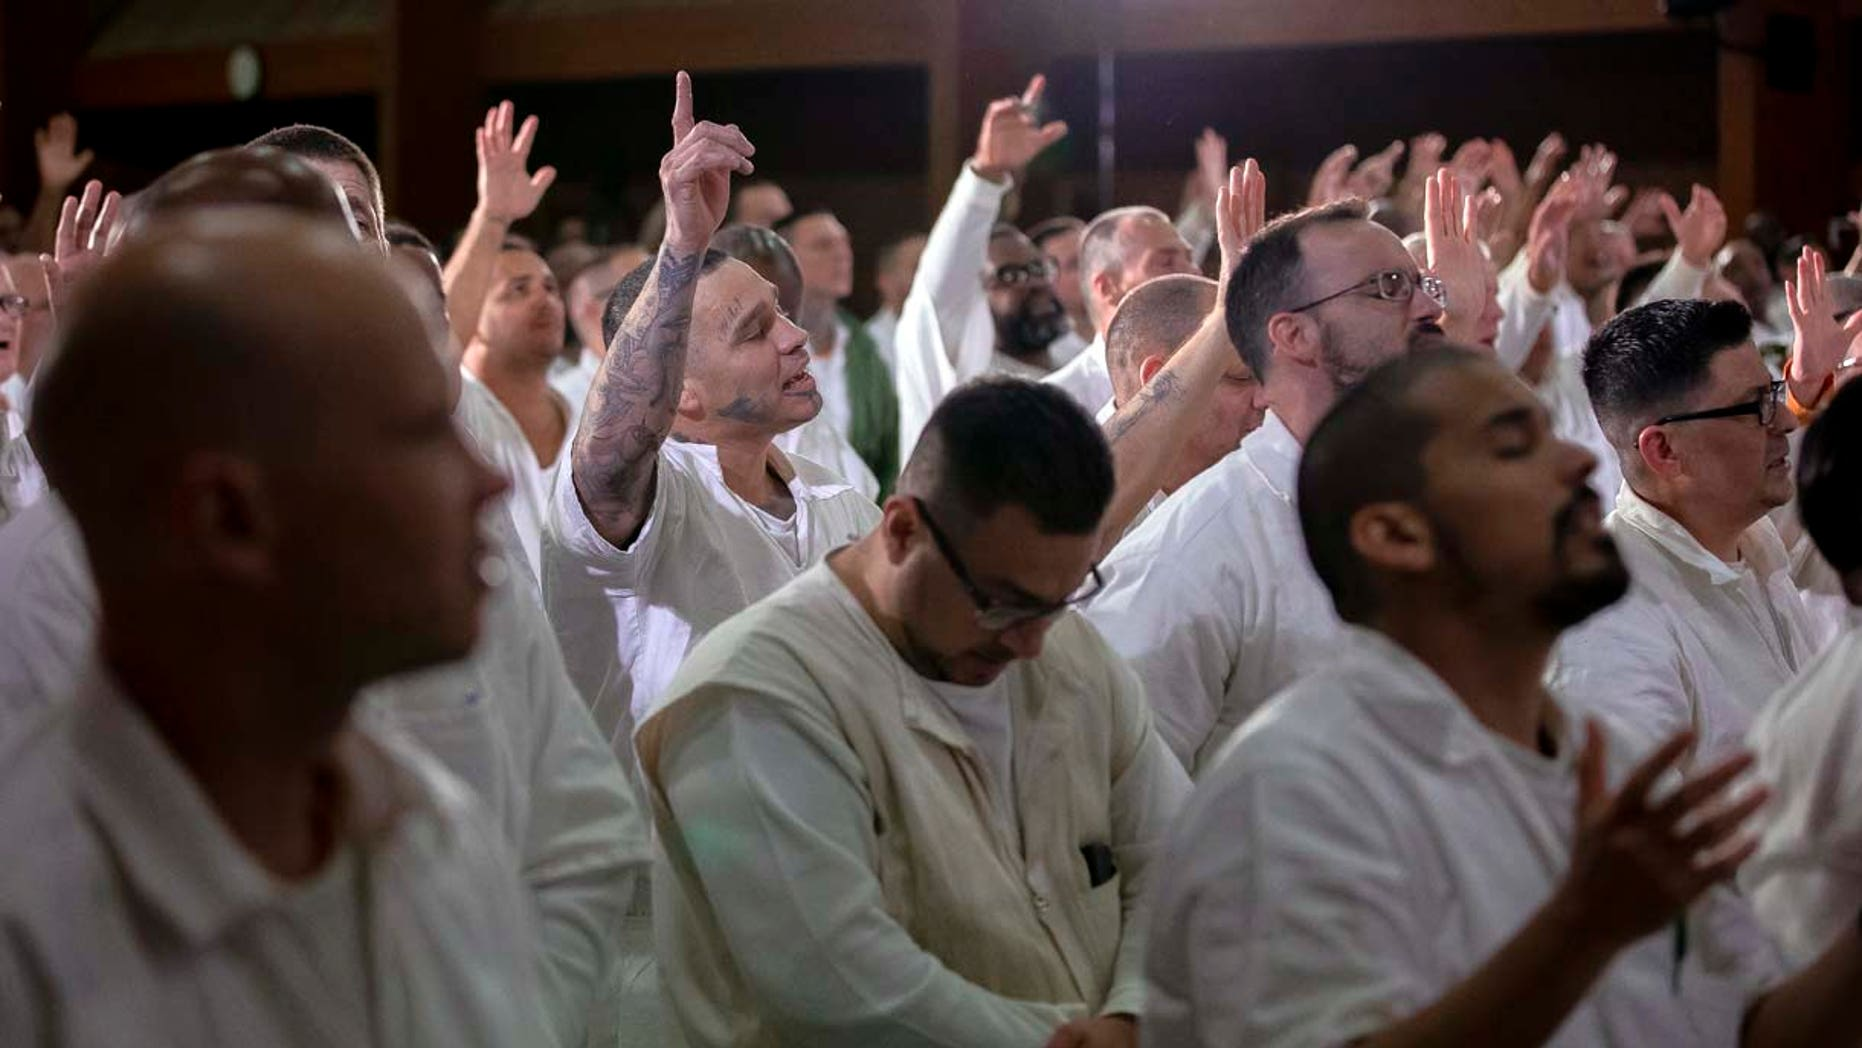 Inmates at the Coffield Unit, a maximum security prison in Anderson County, Texas, worship during a church service.They are part of the newest campus for Gateway Church of Dallas, Texas.